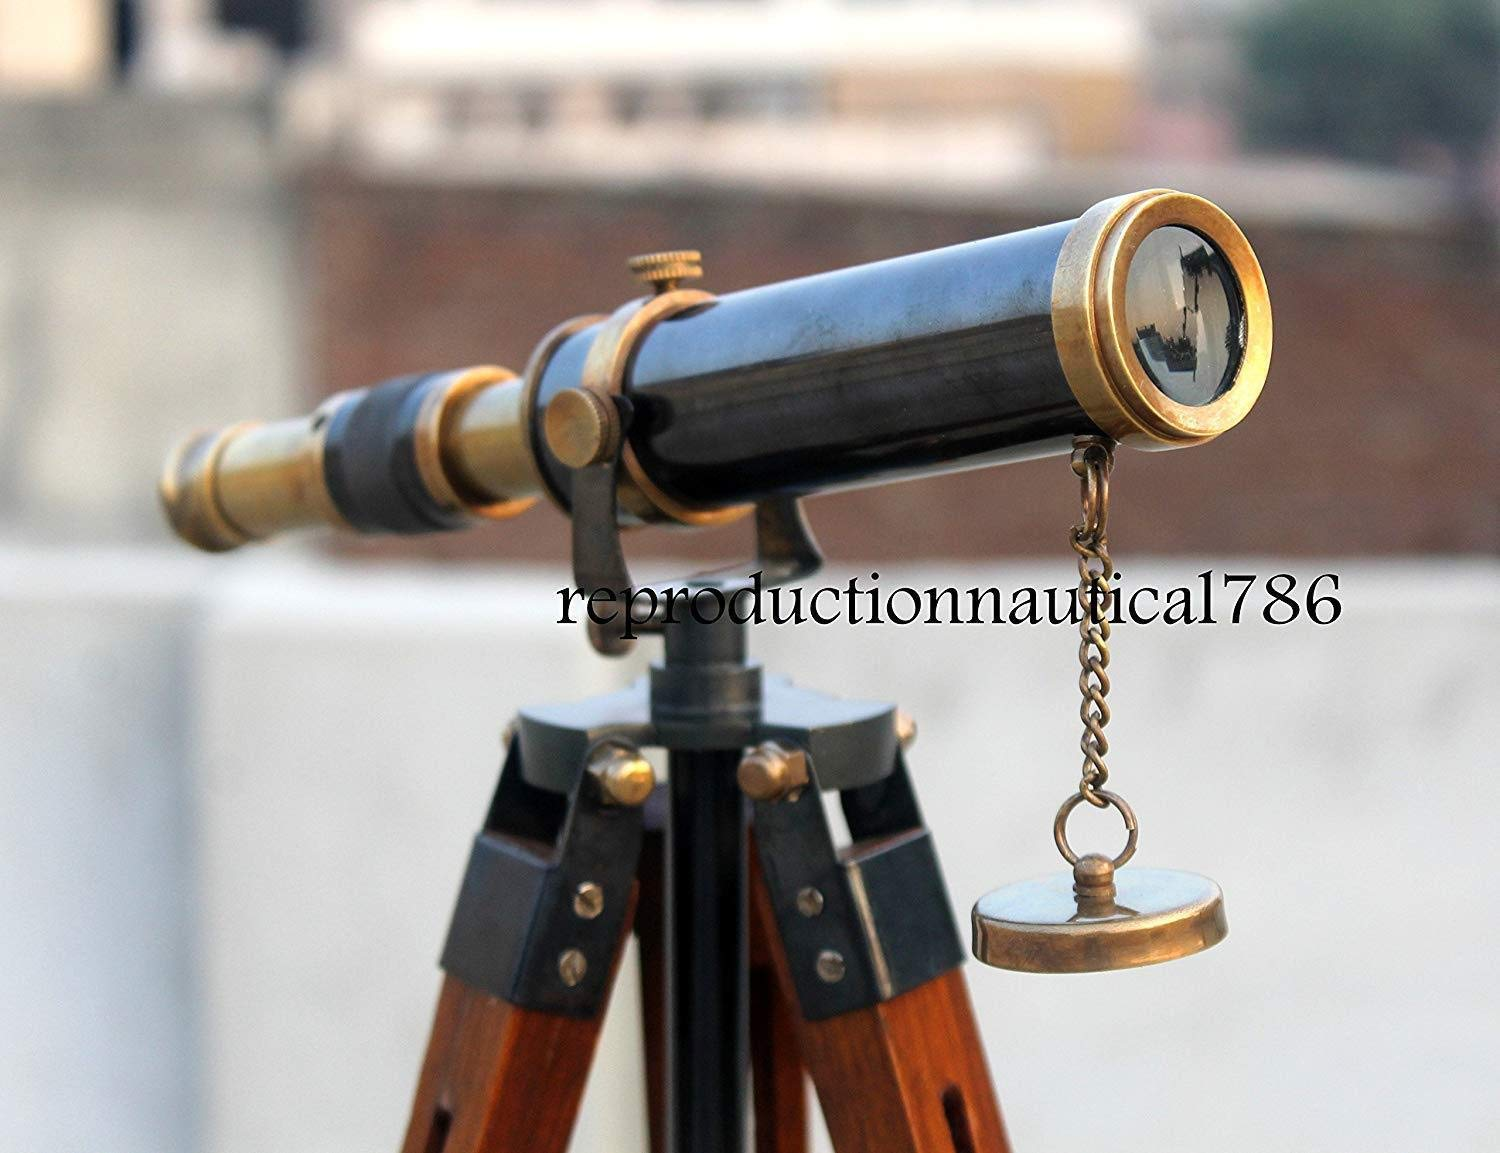 Arsh Nautical Antique Collectible Brass Marine Maritime Telescope with Wooden Tripod Stand